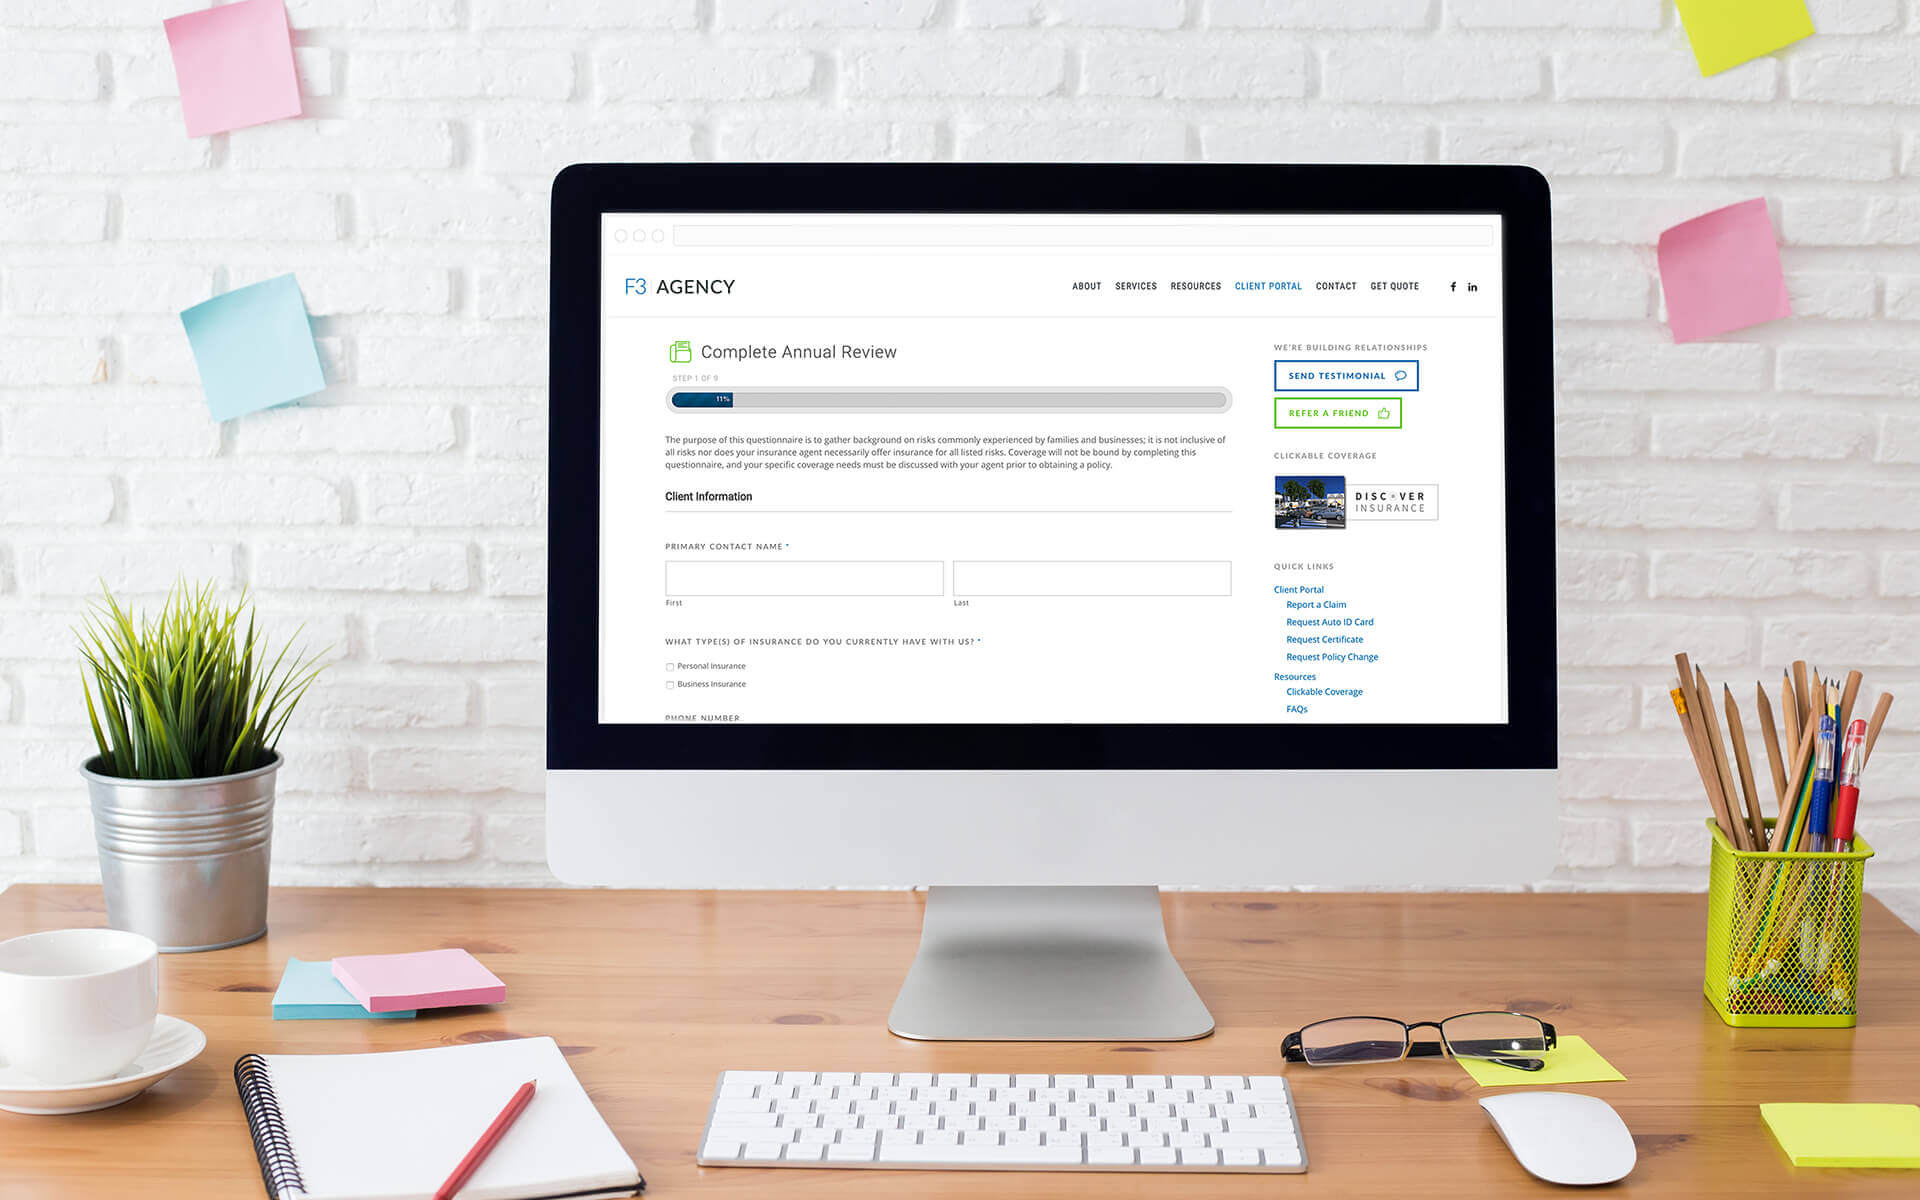 5 ways insurance agencies can use website forms to improve business